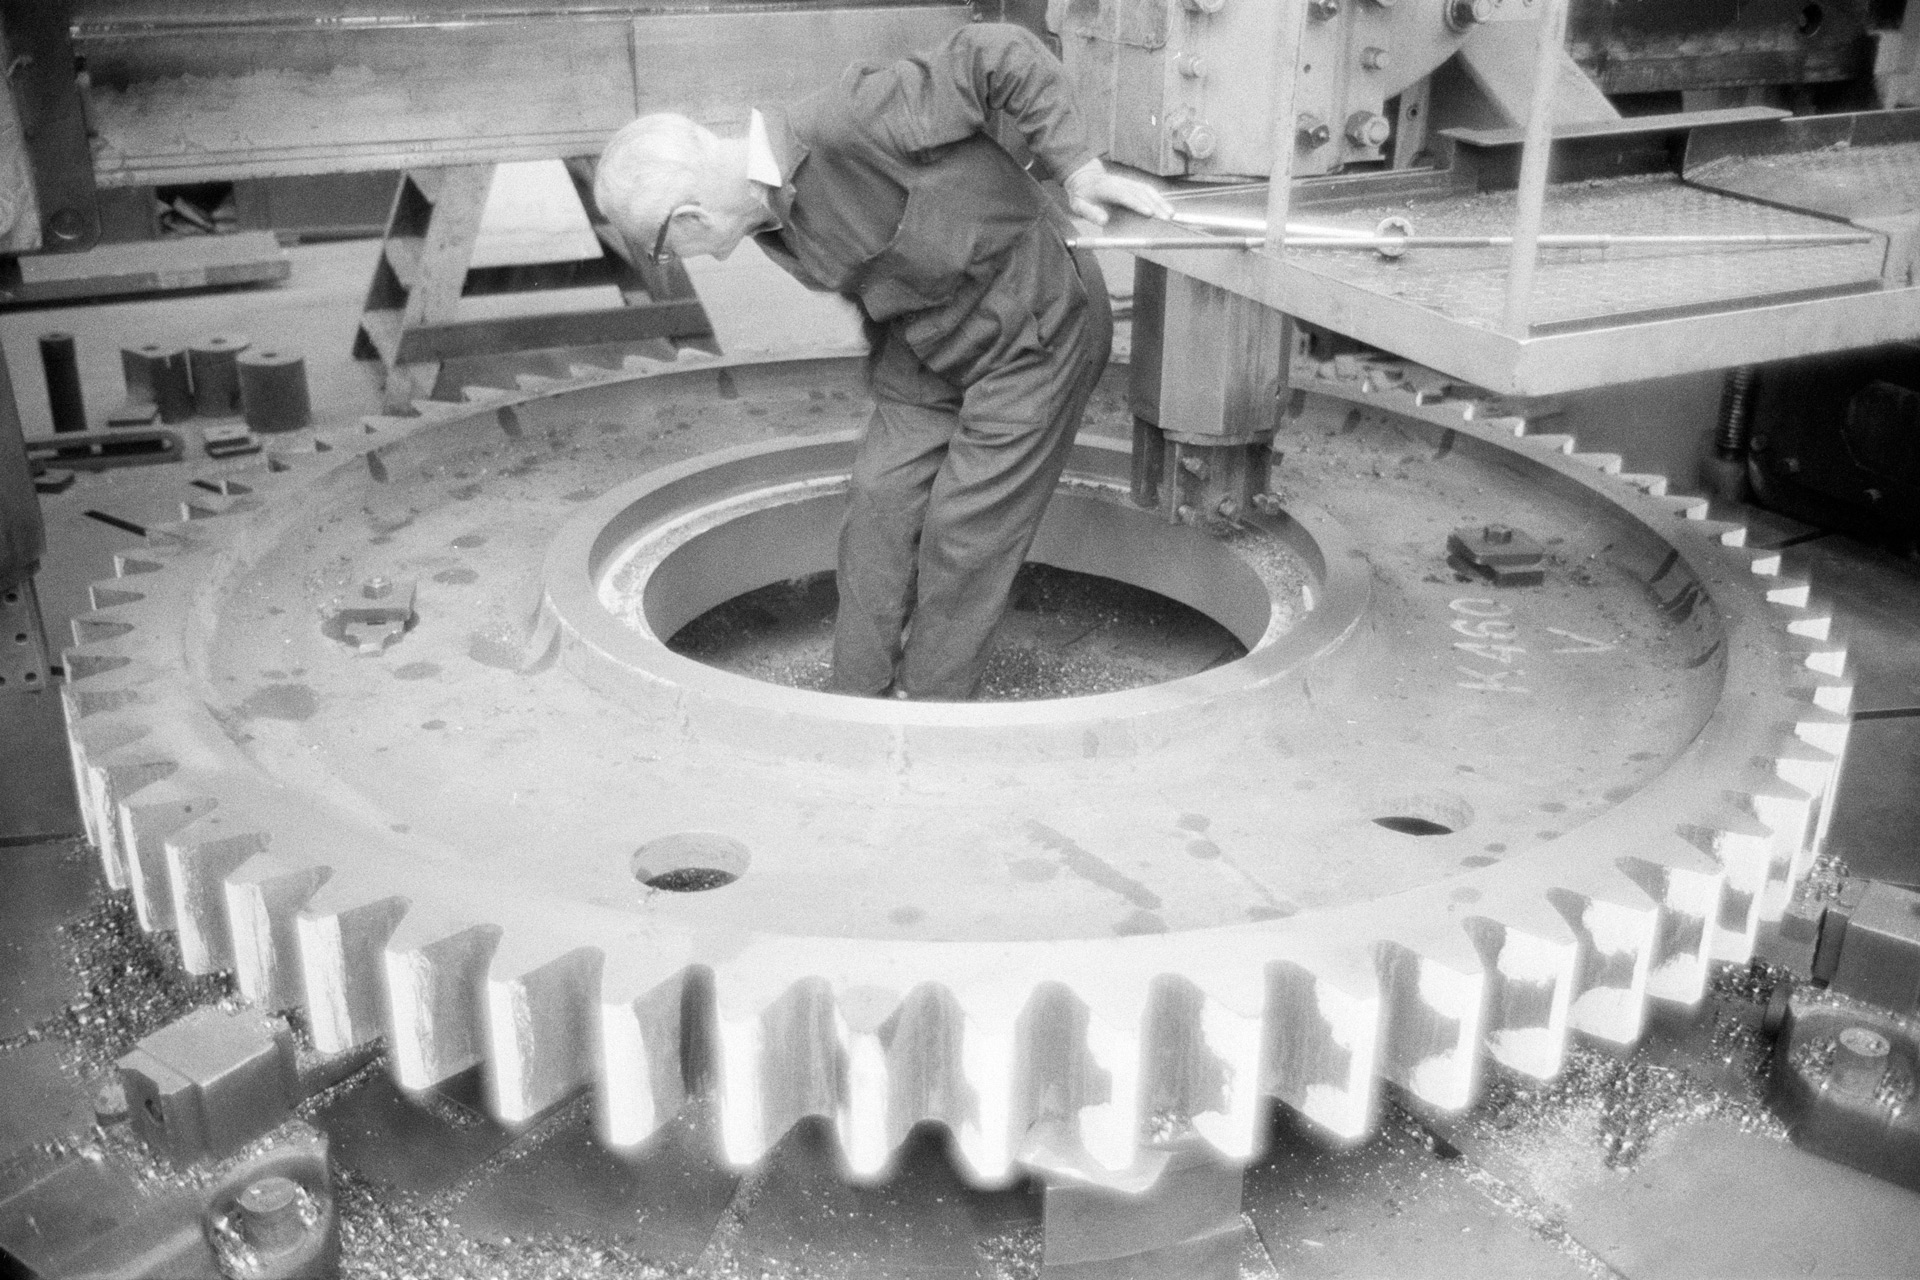 John Hendry, Turner, Boring and Facing Turning Wheel for Ships Main Engine; John G. Kincaid Engineer, from the series 'Clydeside 1974-76', © Larry Herman, image courtesy Street Level Photoworks.